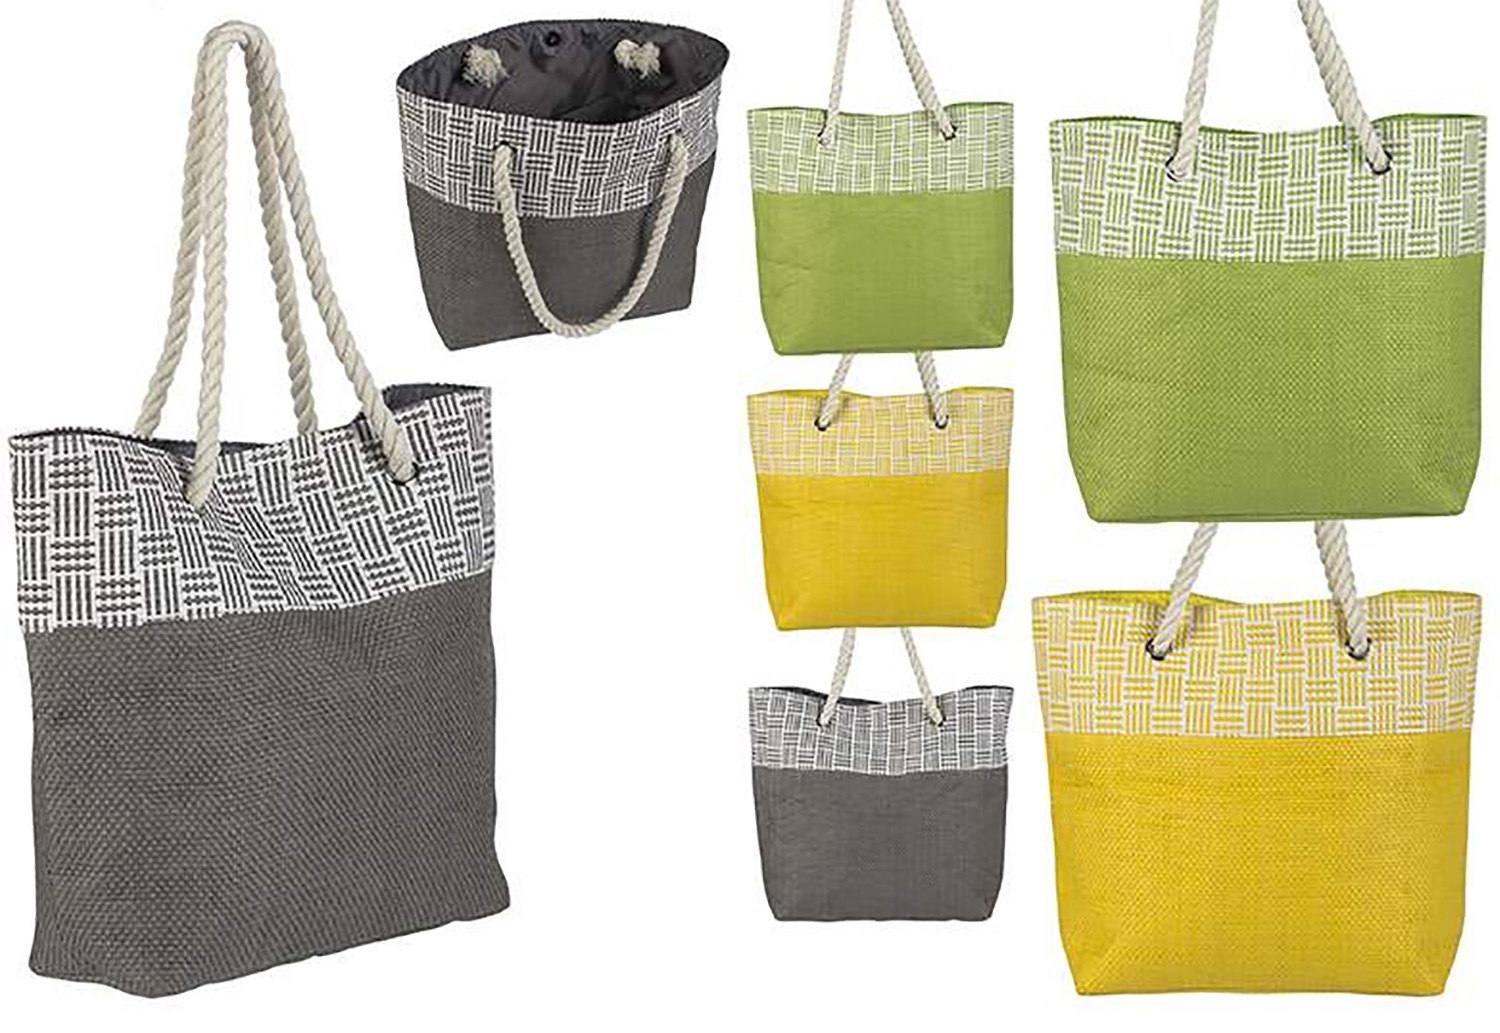 Beach bag with Handle Modern Design Original Three Colors, Home and More